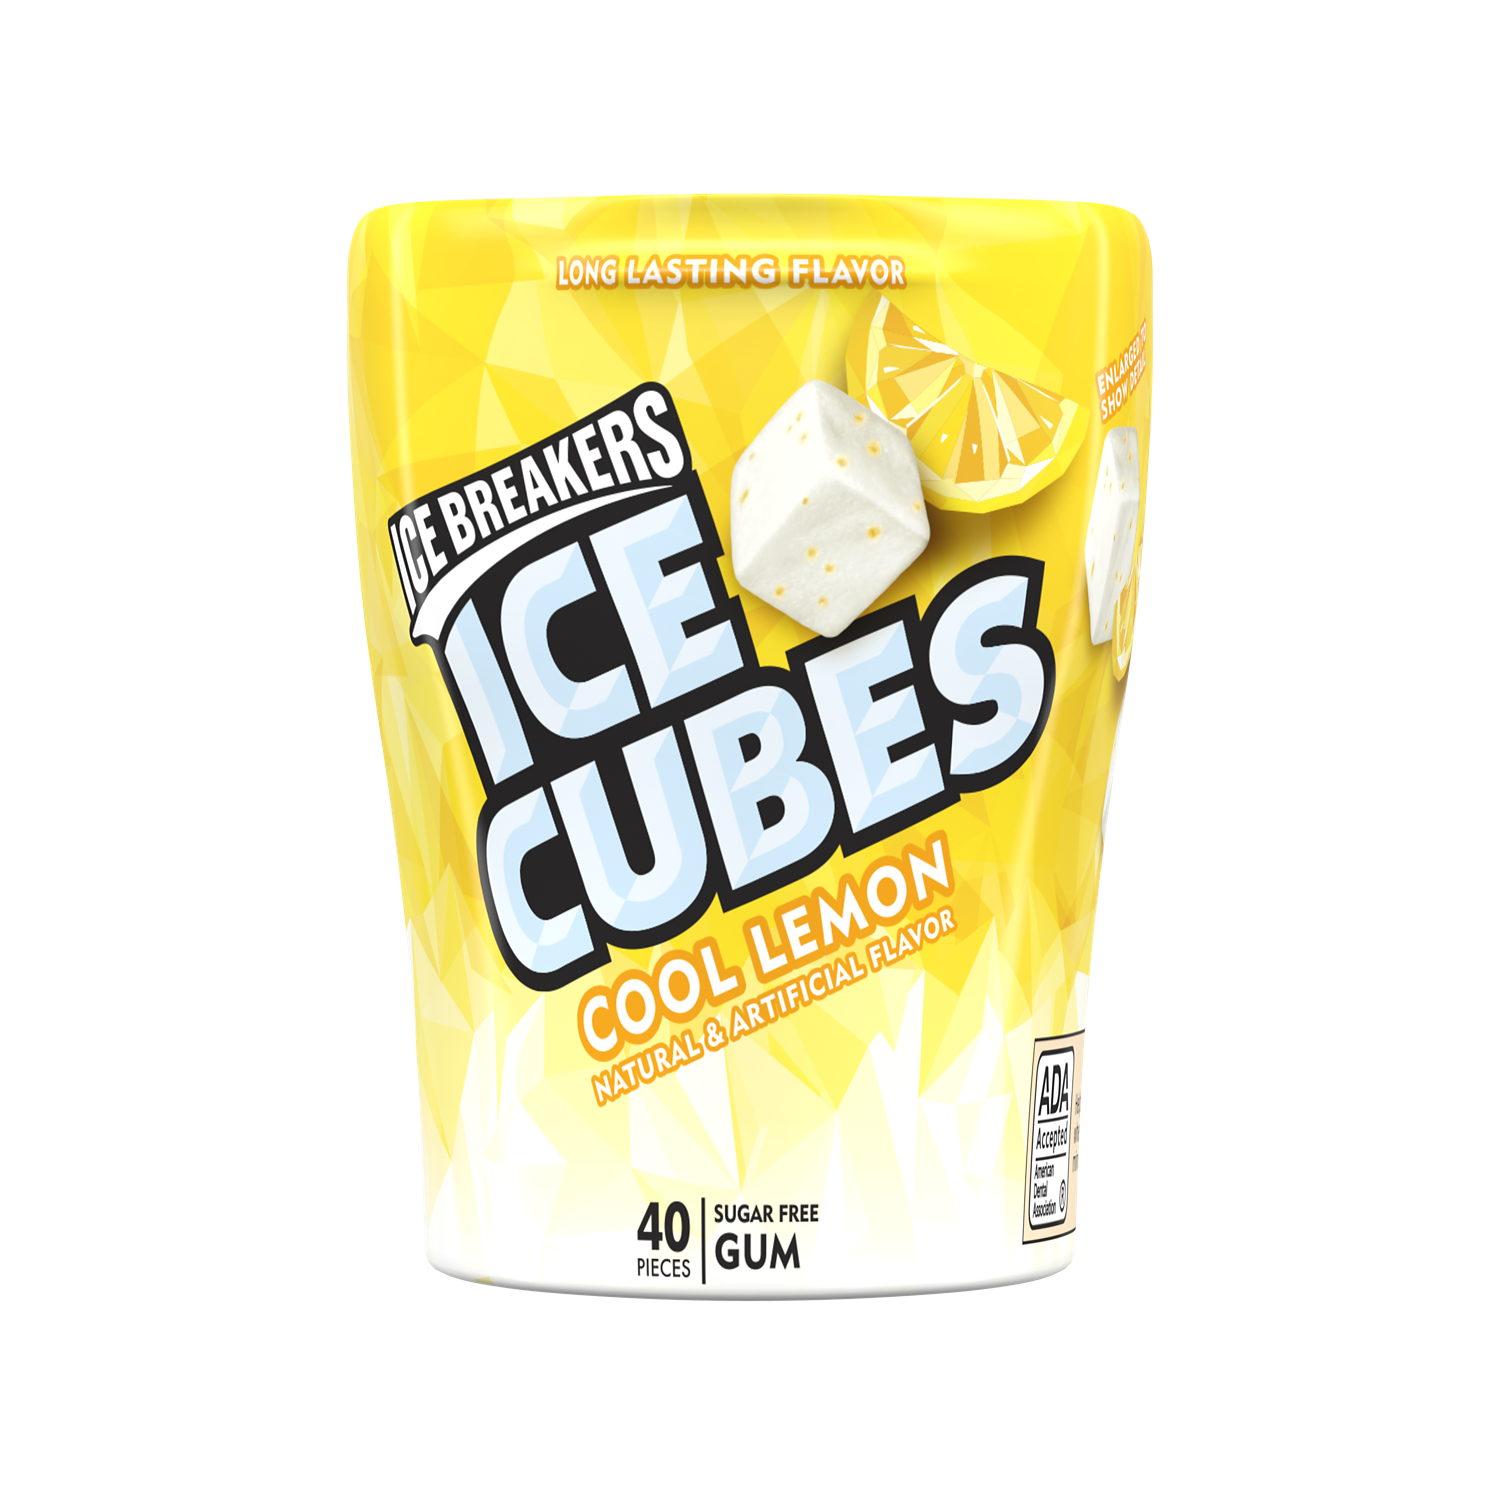 ICE BREAKERS ICE CUBES Cool Lemon Sugar Free Gum, 3.24 oz bottle, 40 pieces - Front of Package